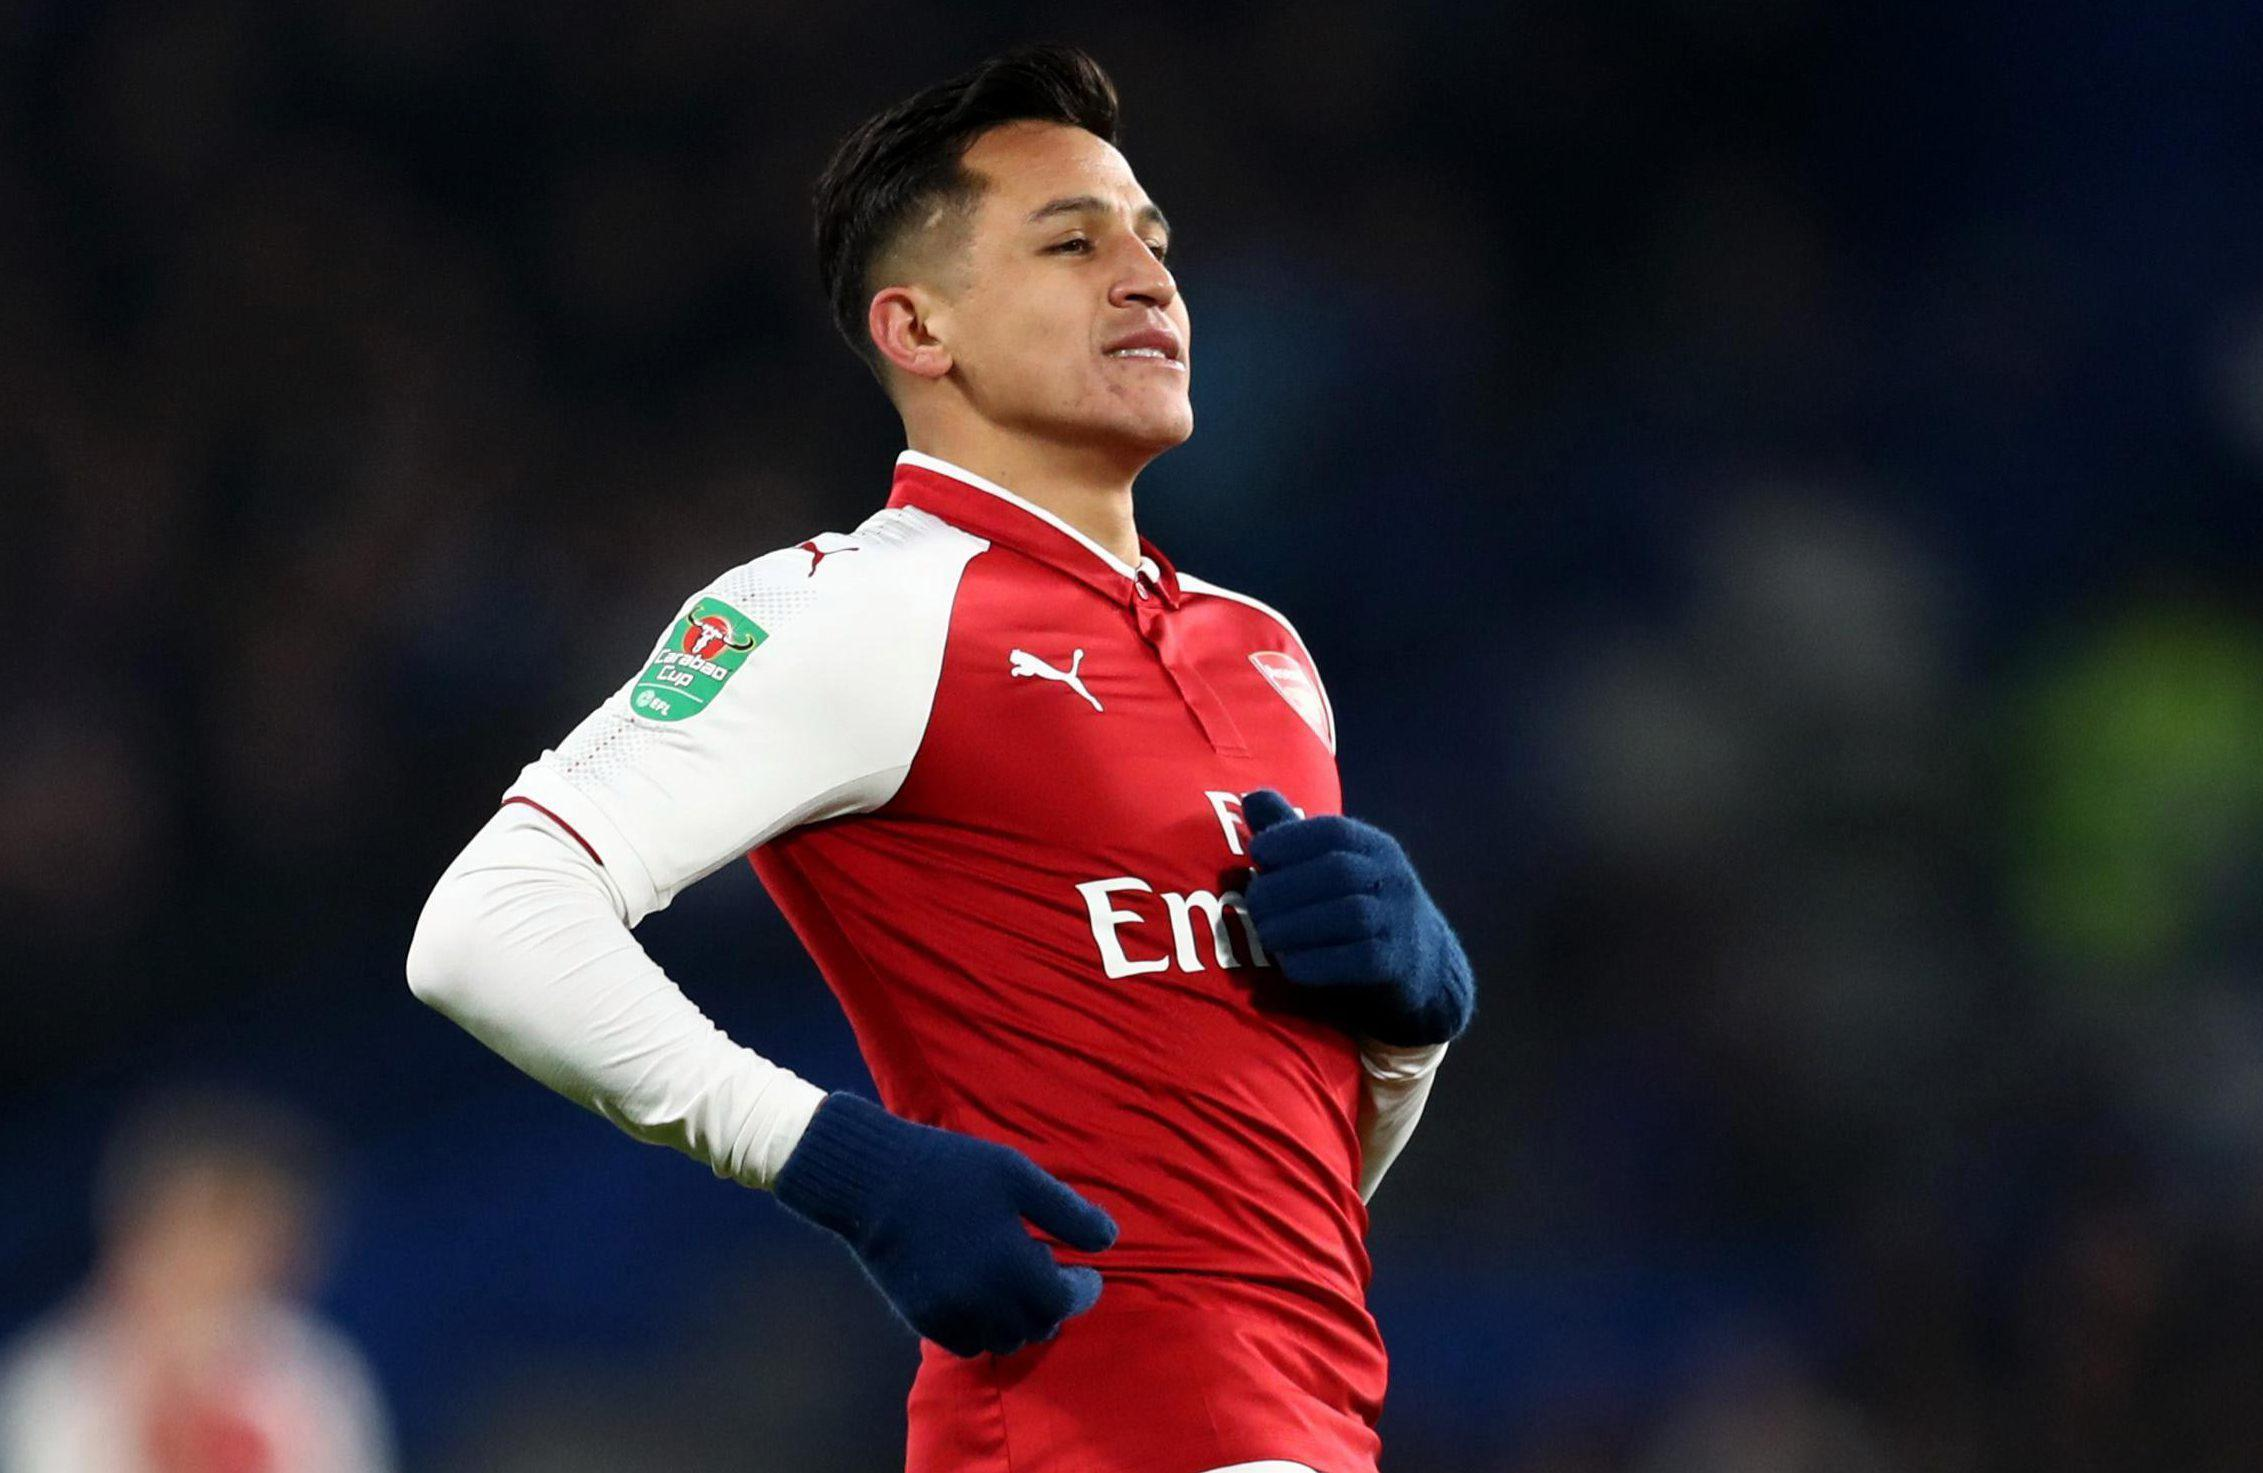 Arsenal could soon be hunting a replacement for Alexis Sanchez